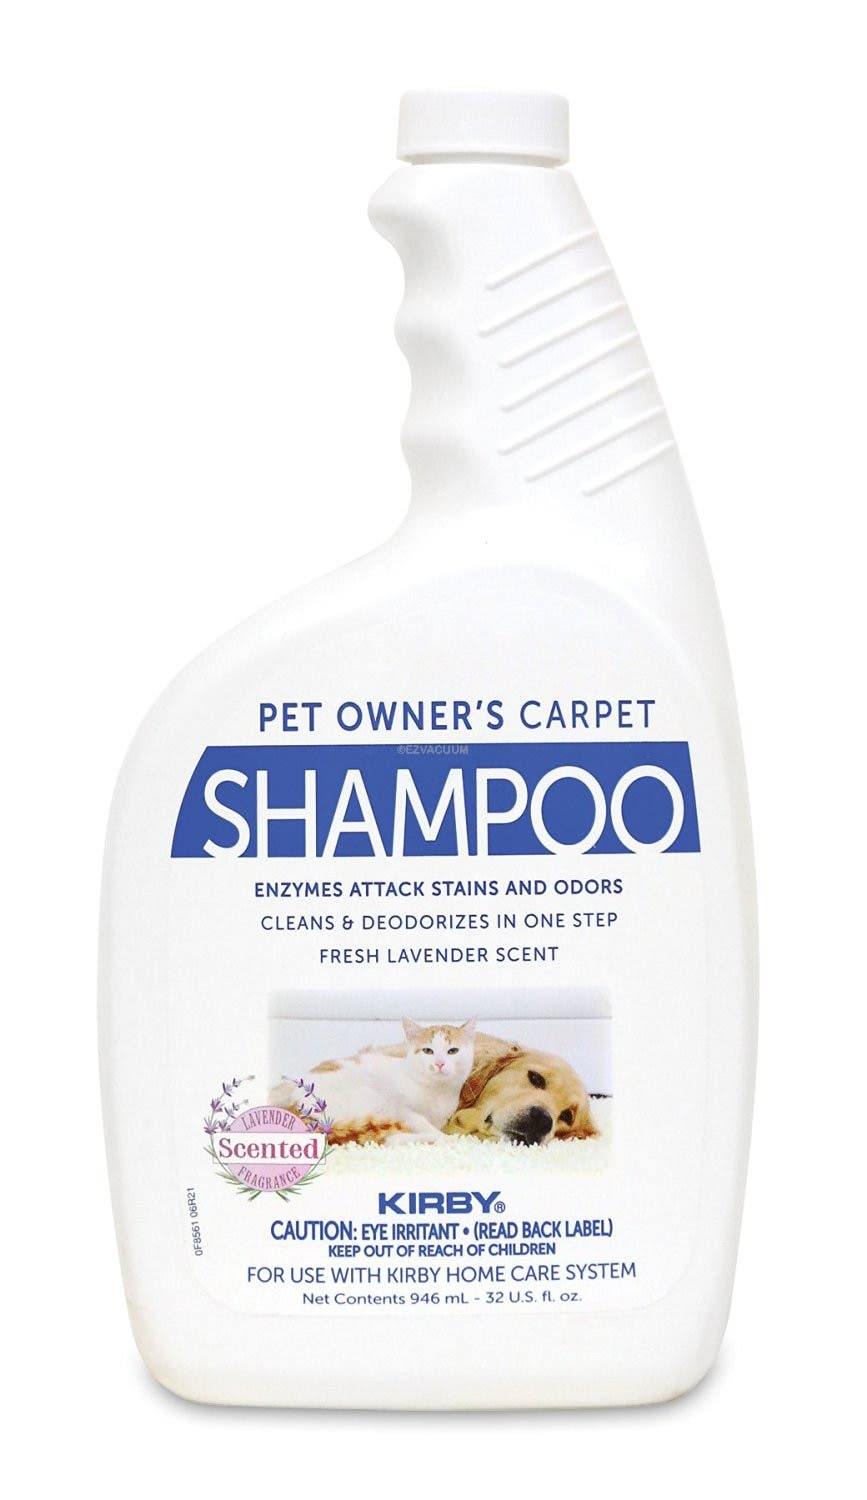 Kirby 235406 Carpet Shampoo for Pet Owners - 32oz